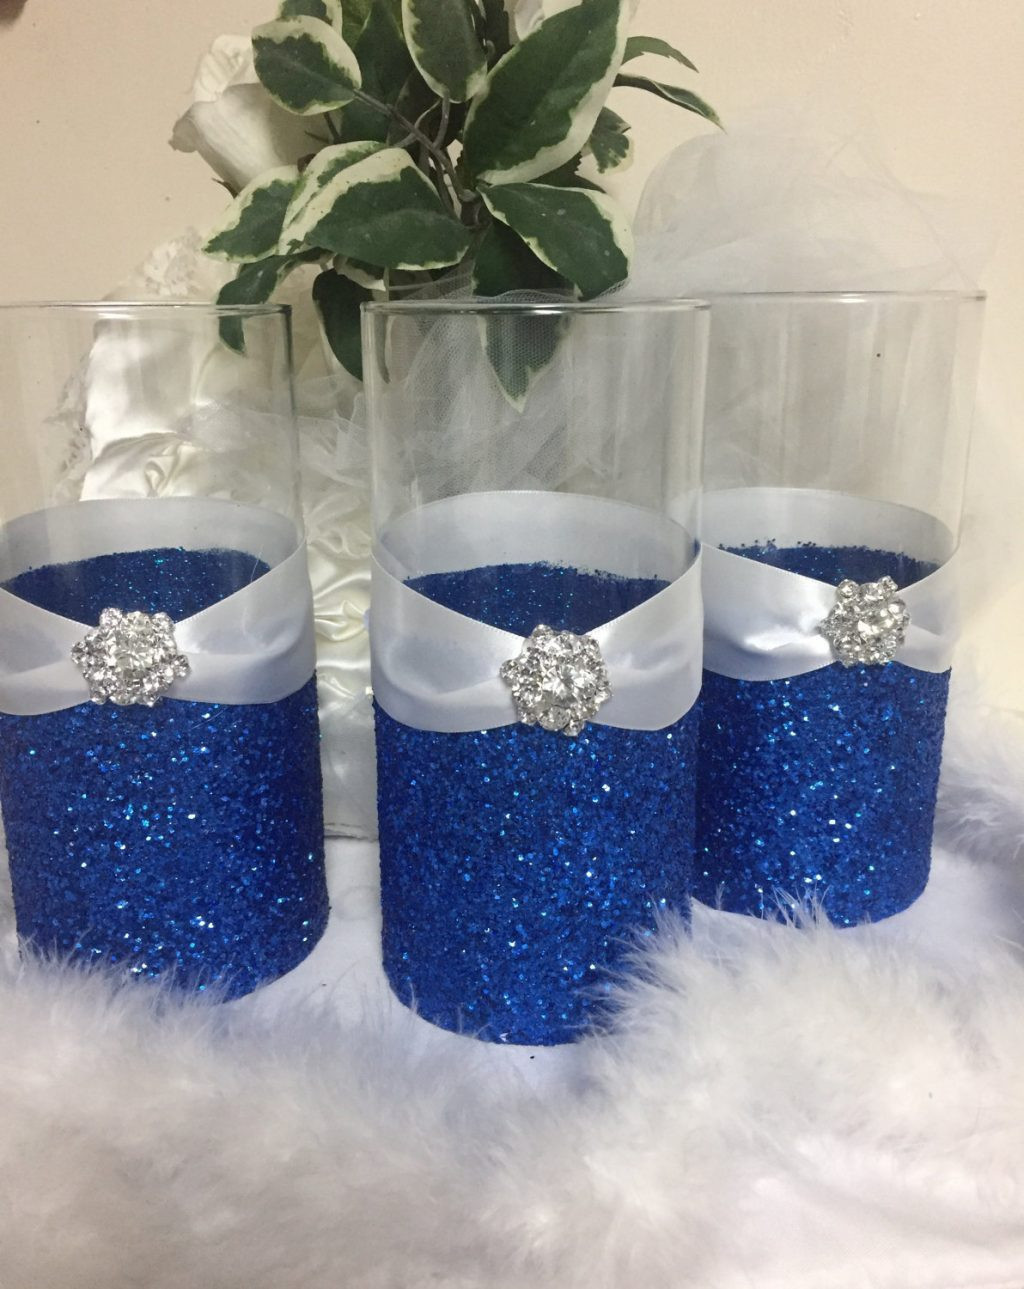 daum crystal vase of navy blue vases collection a daum nancy glass beaker form vase the throughout navy blue vases gallery tallh vases glitter vase centerpiece diy vasei 0d ball for design of